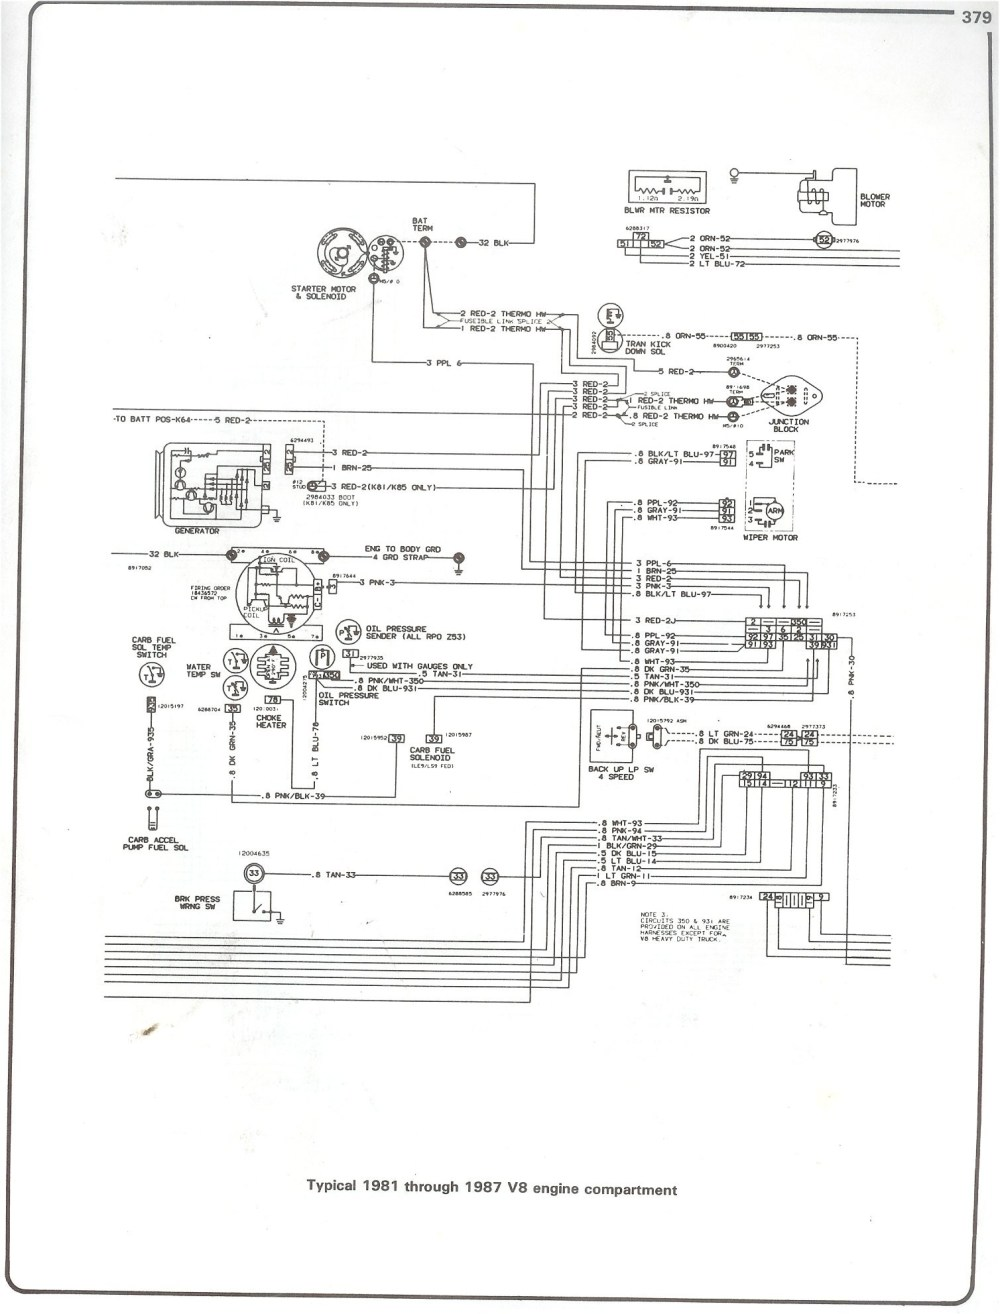 medium resolution of 1995 chevy truck parts diagram 1972 chevy c10 wiring diagram rh detoxicrecenze com 1986 chevy 350